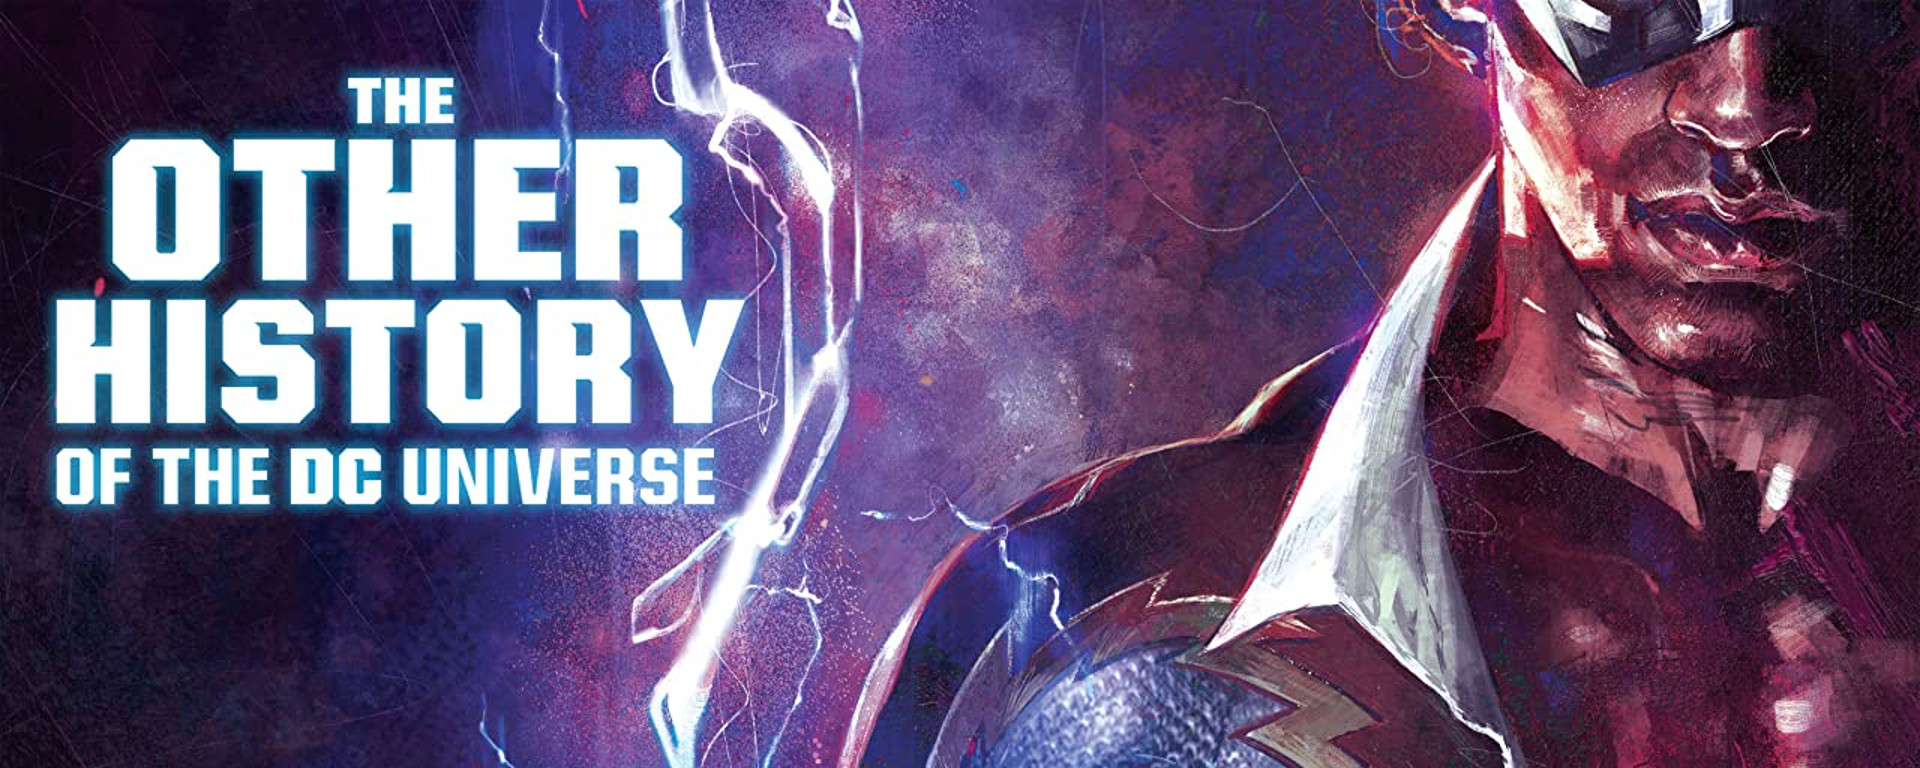 The Other History Of The DC Universe #1 Header